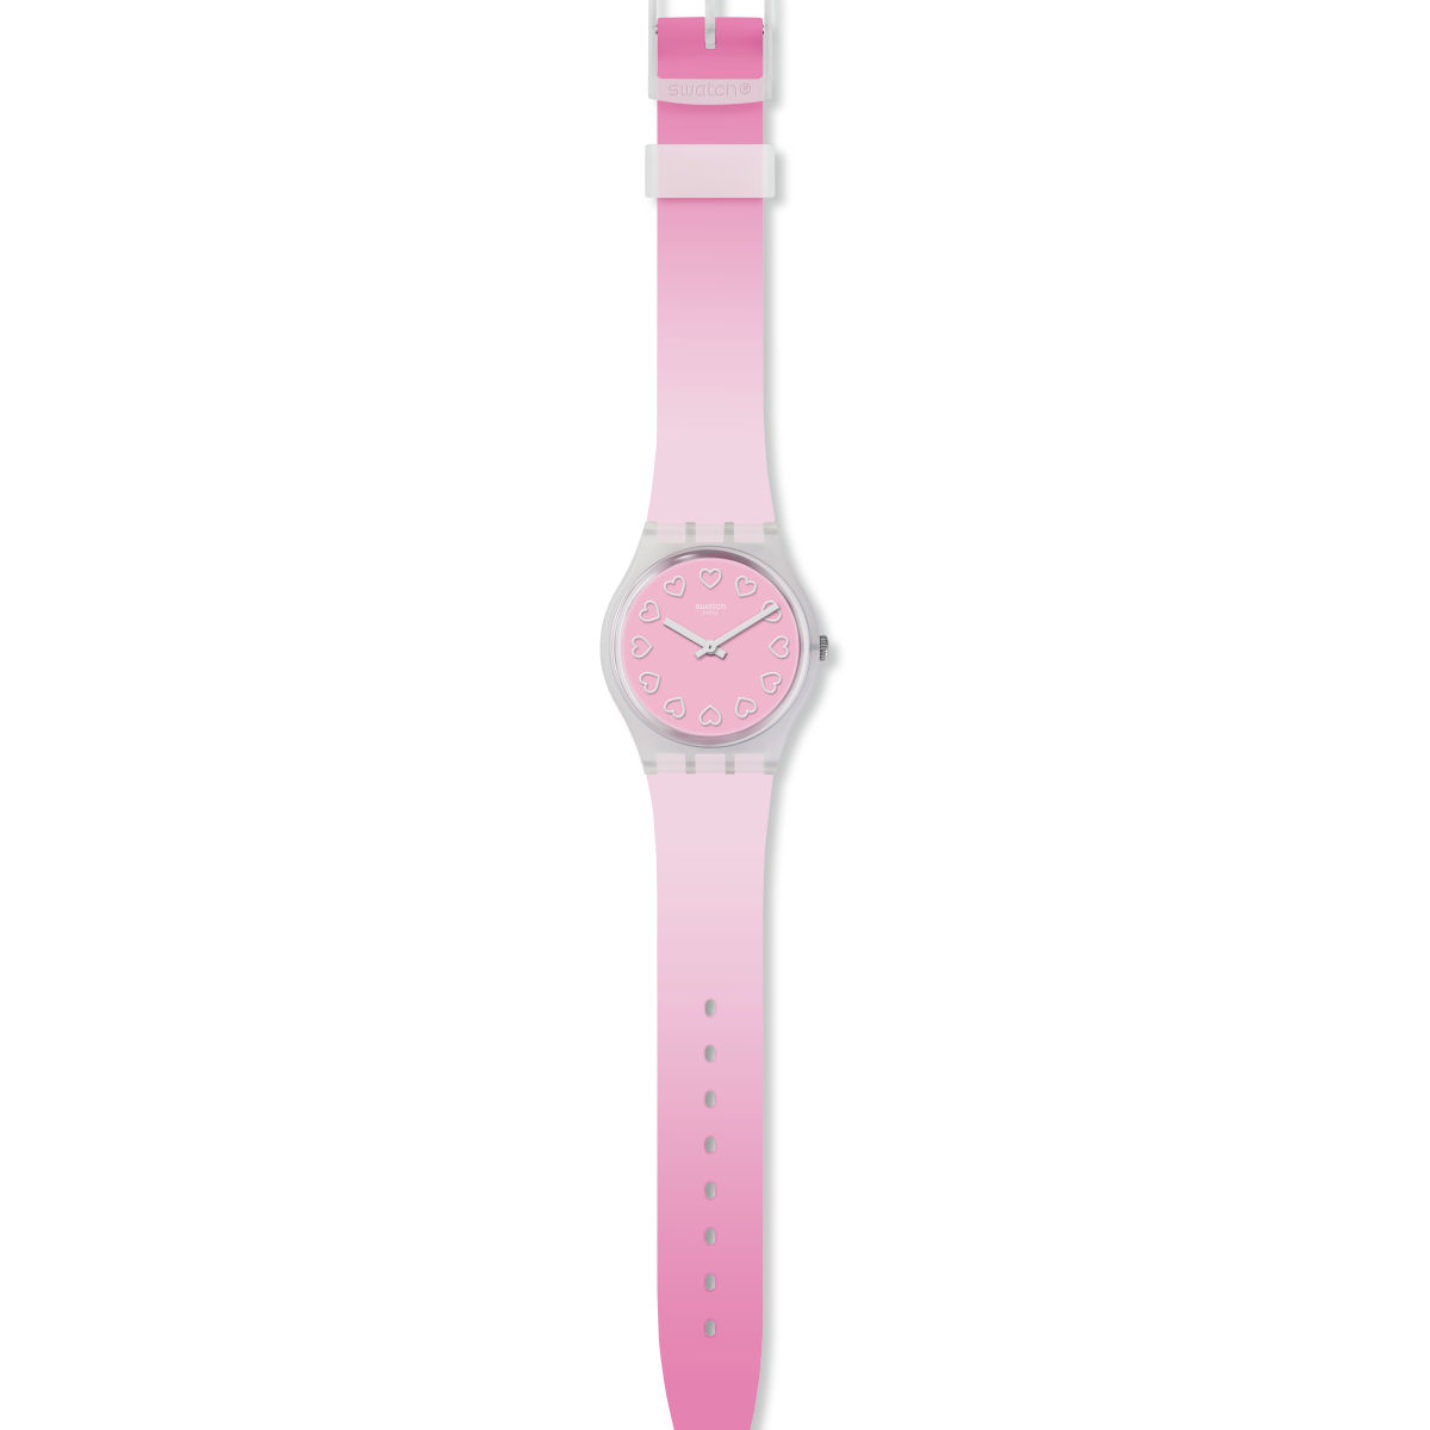 Swatch ALL PINK Watch